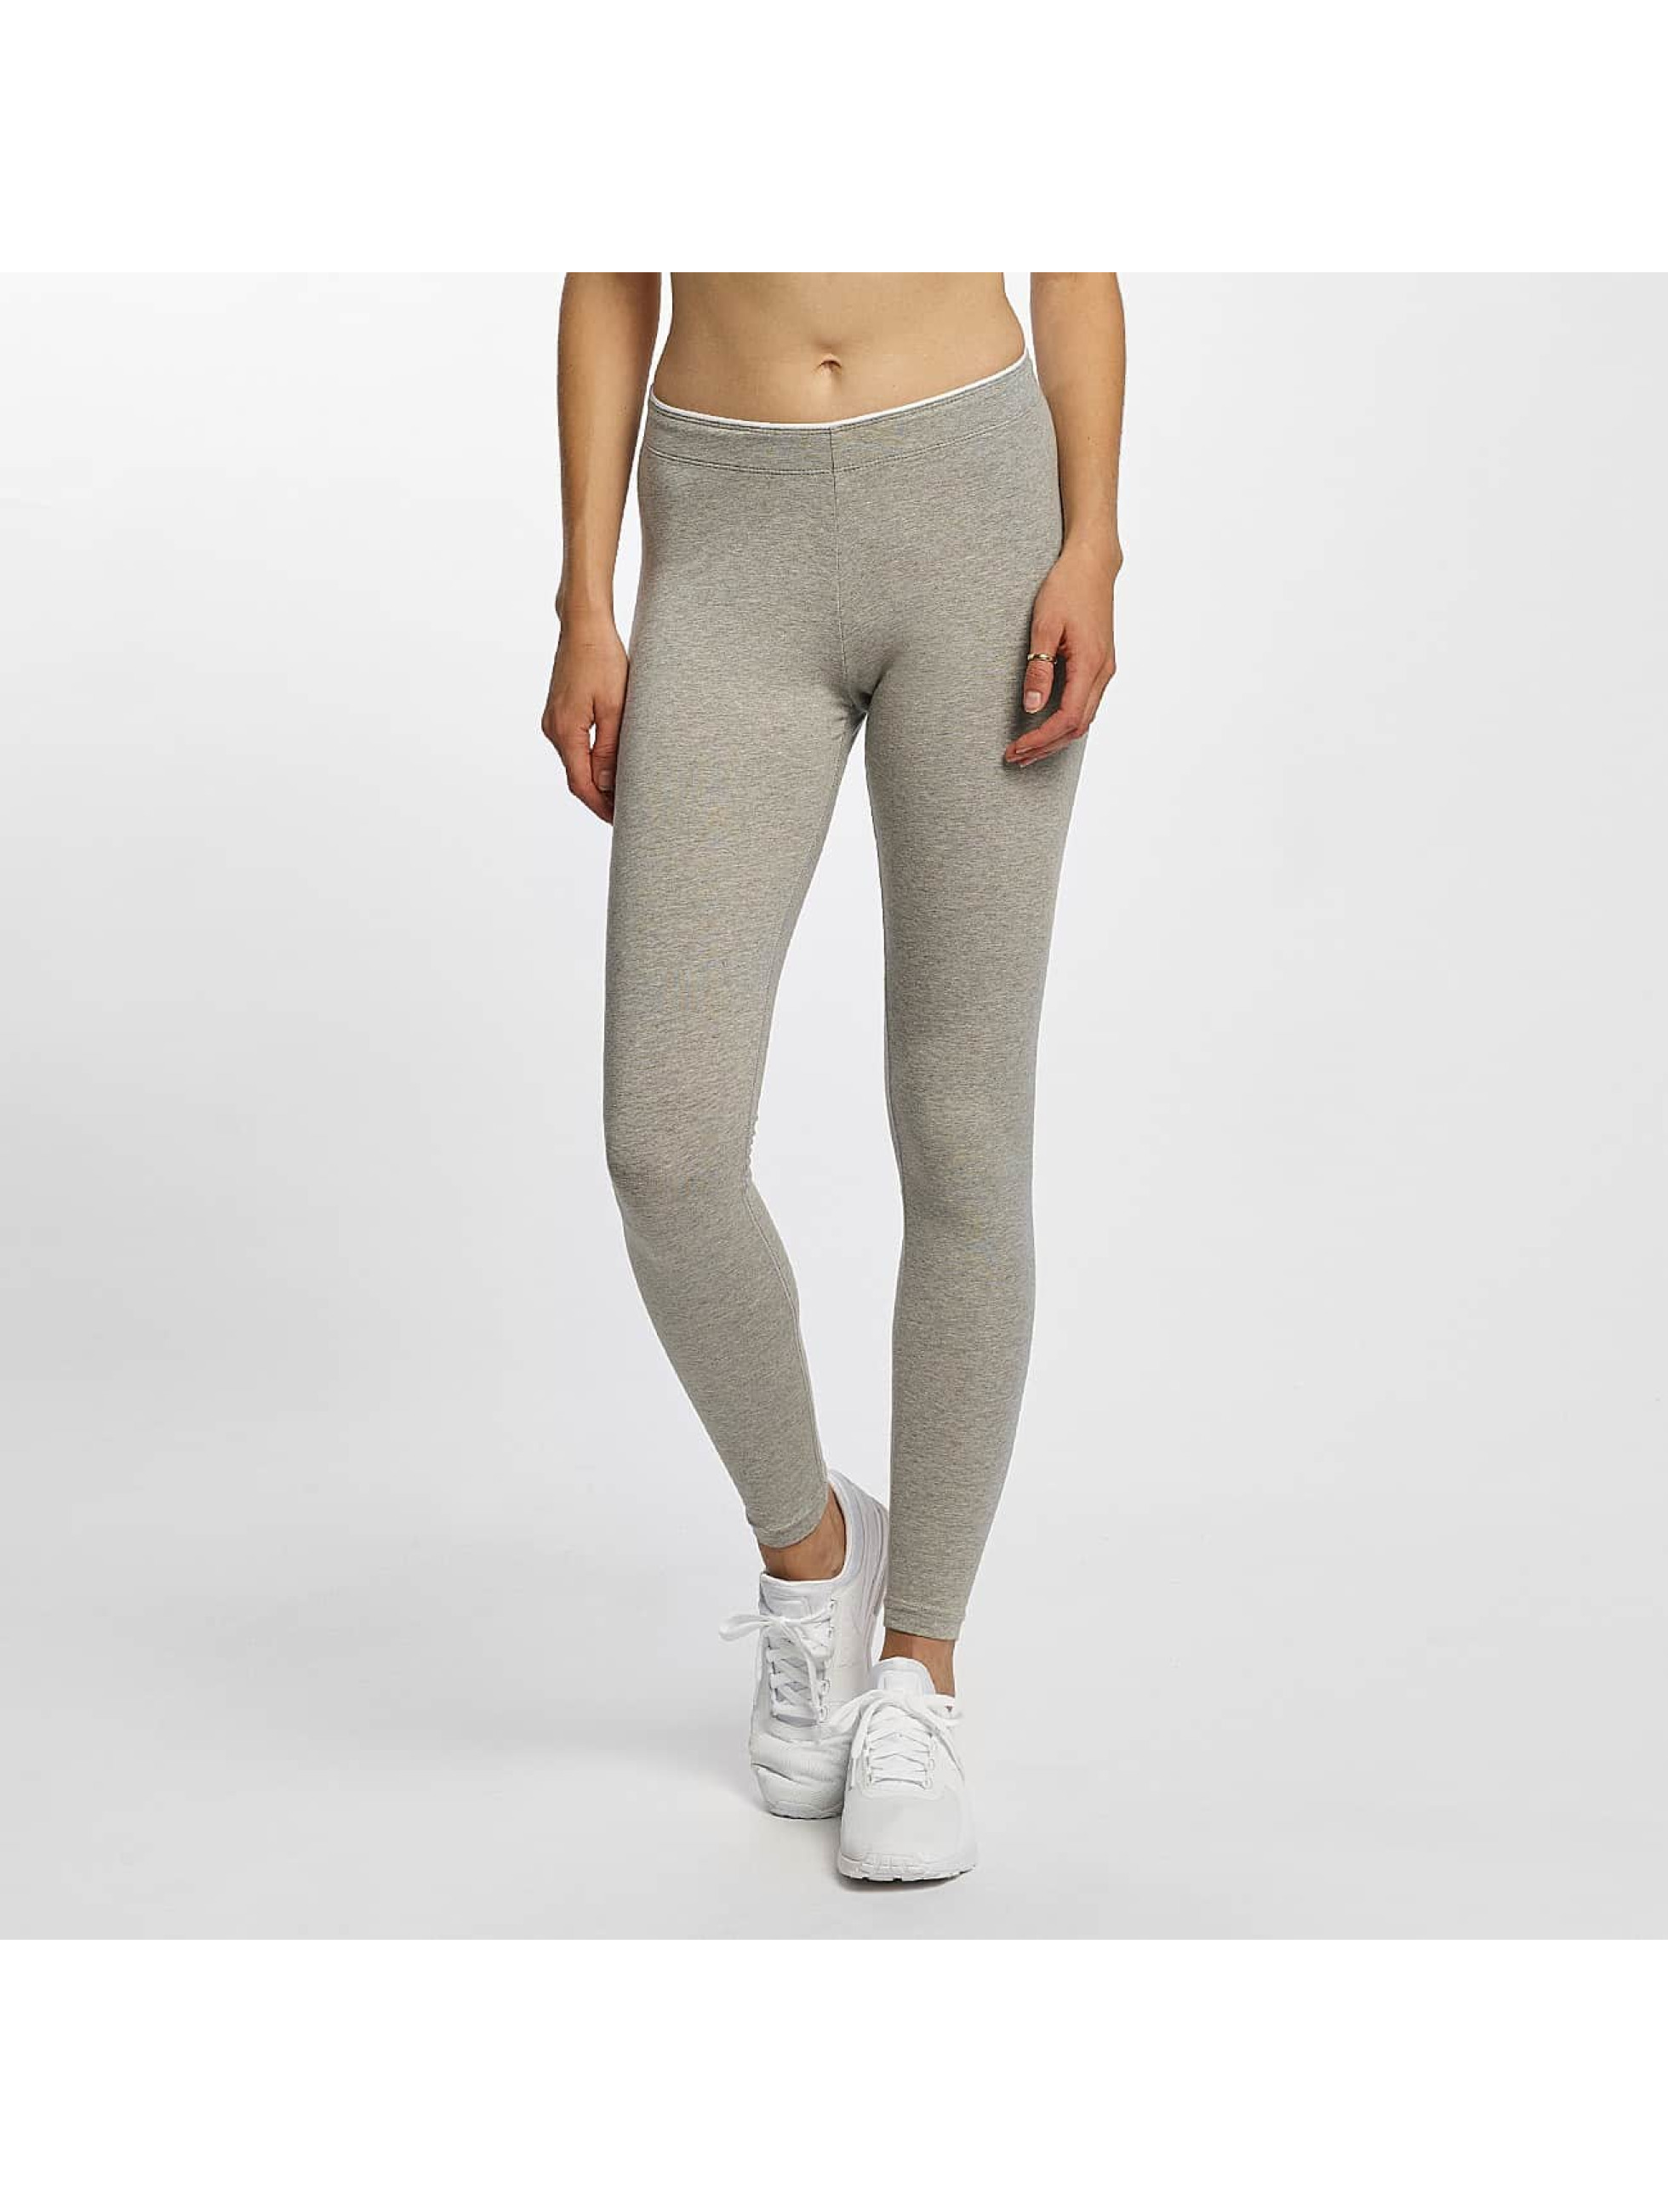 Nike Frauen Legging Club Futura in grau